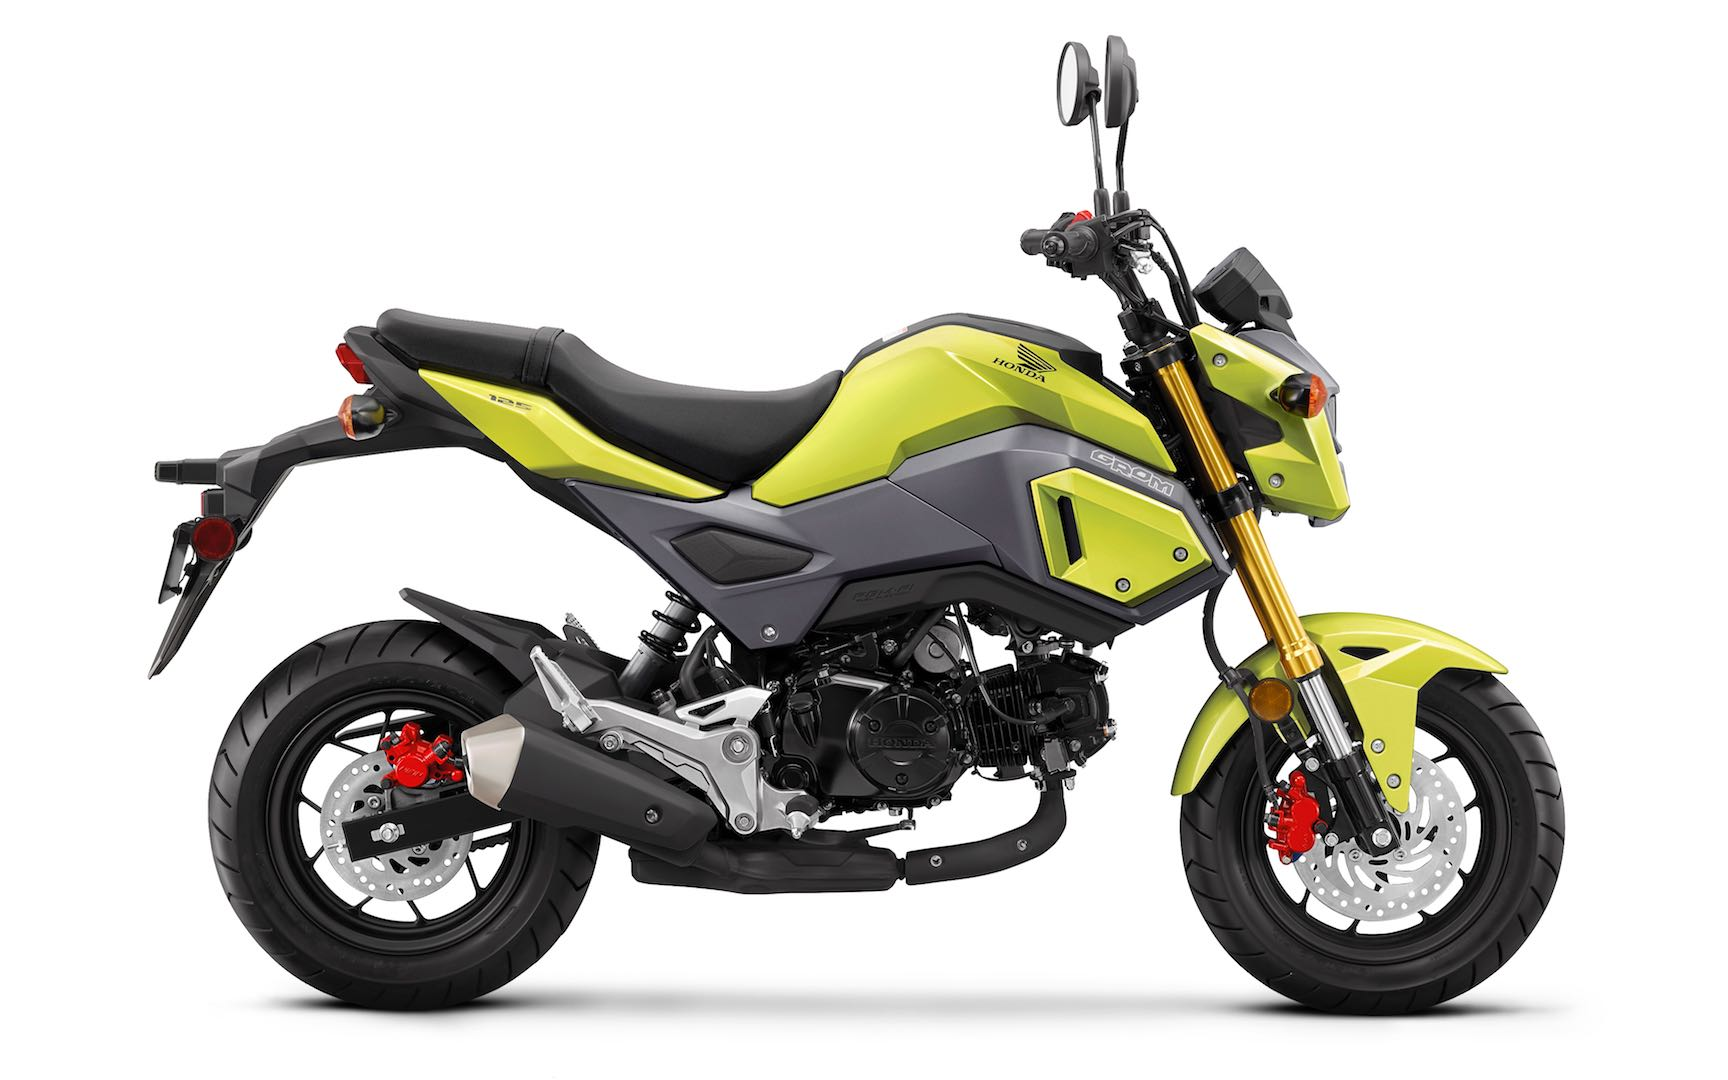 2017 Honda Grom Buyer's Guide | Specs & Price